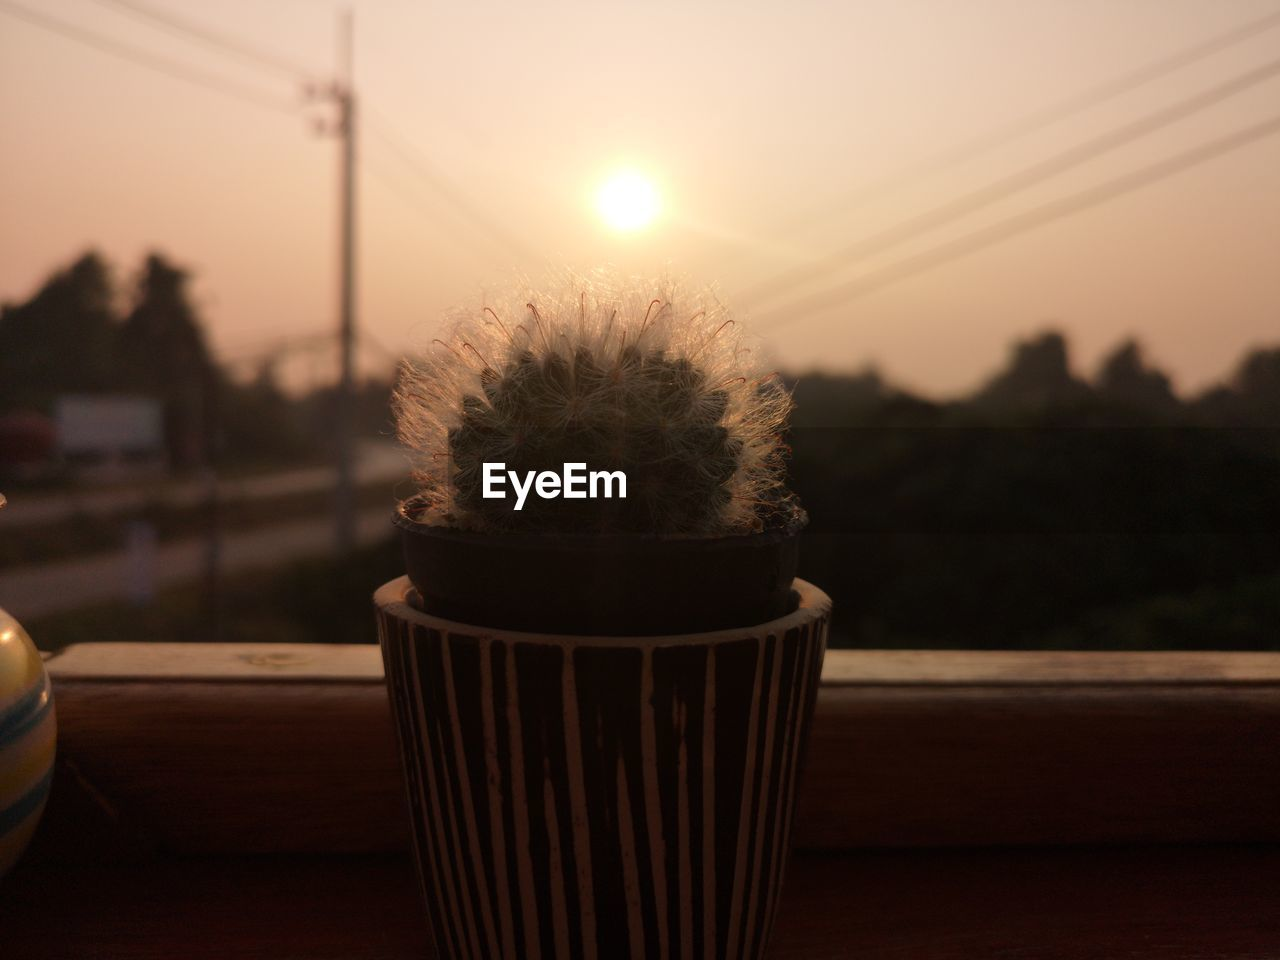 CLOSE-UP OF POTTED PLANT ON TABLE AT SUNSET